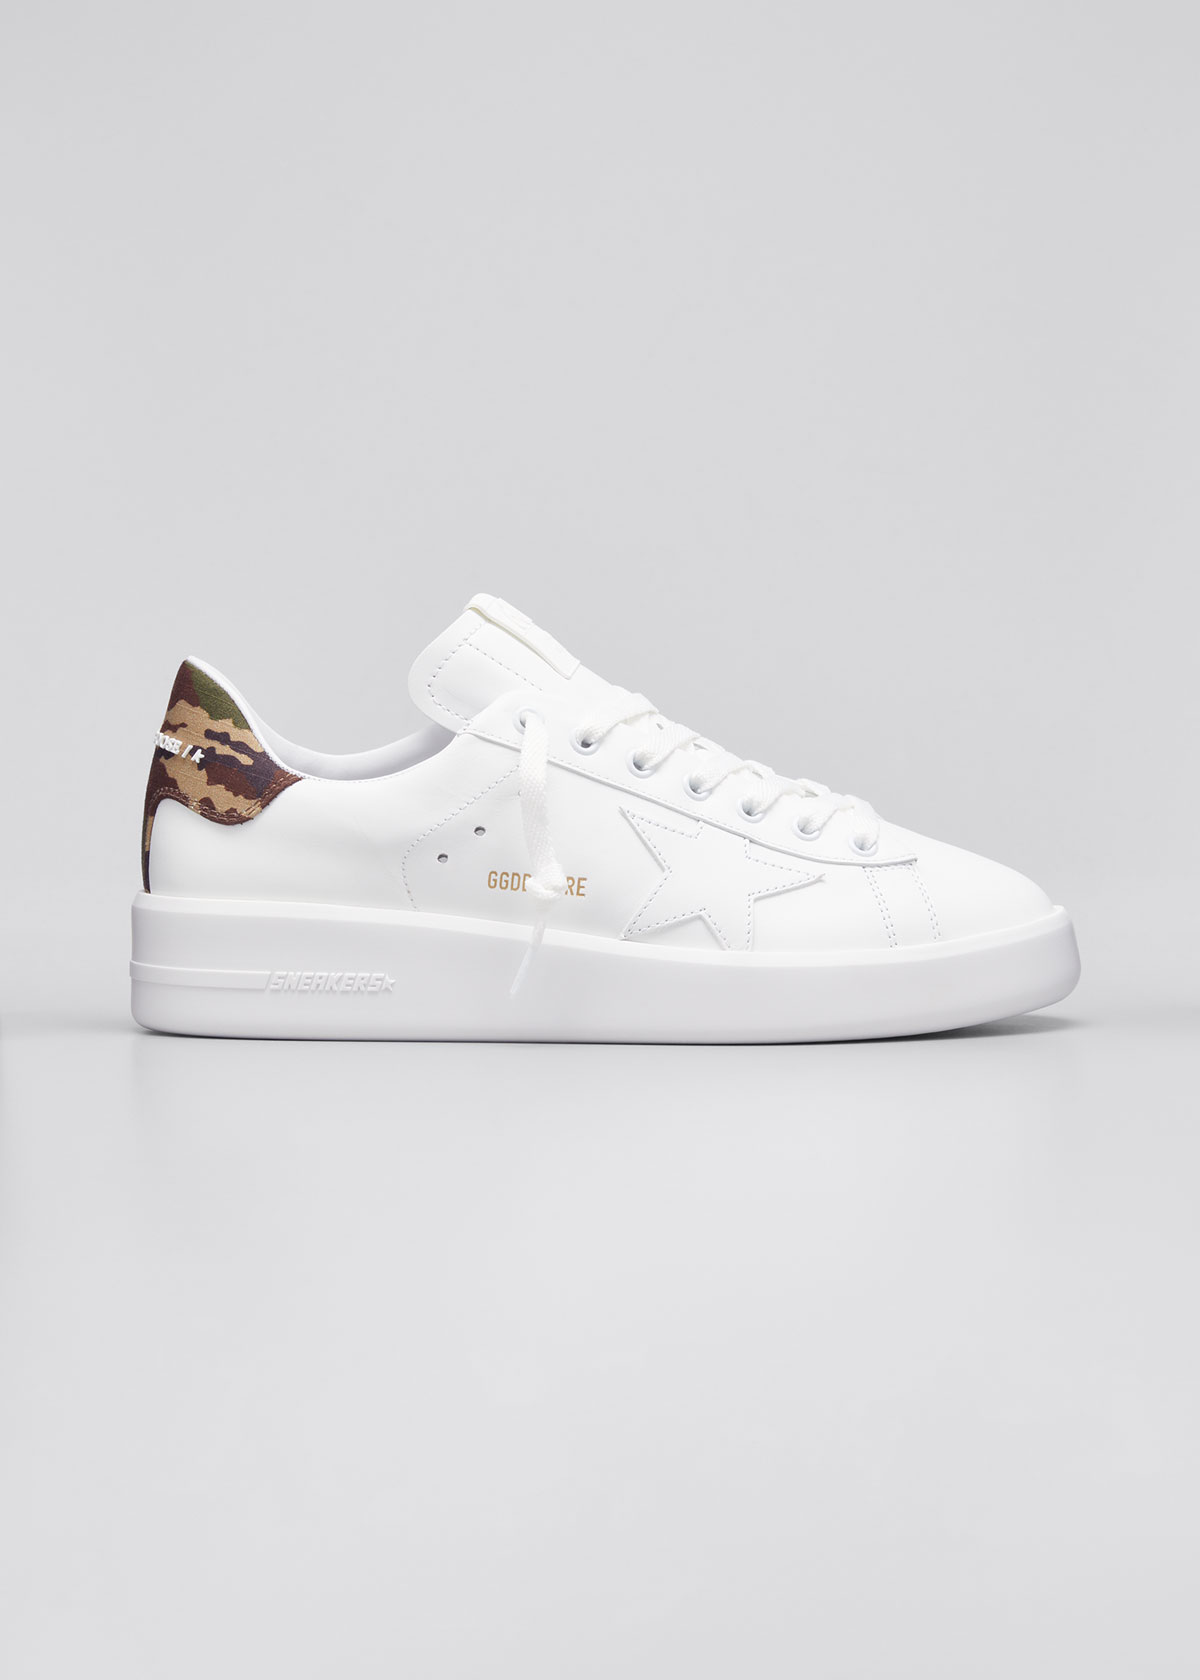 Golden Goose Leathers MEN'S PURE STAR CAMO-PRINT LEATHER SNEAKERS